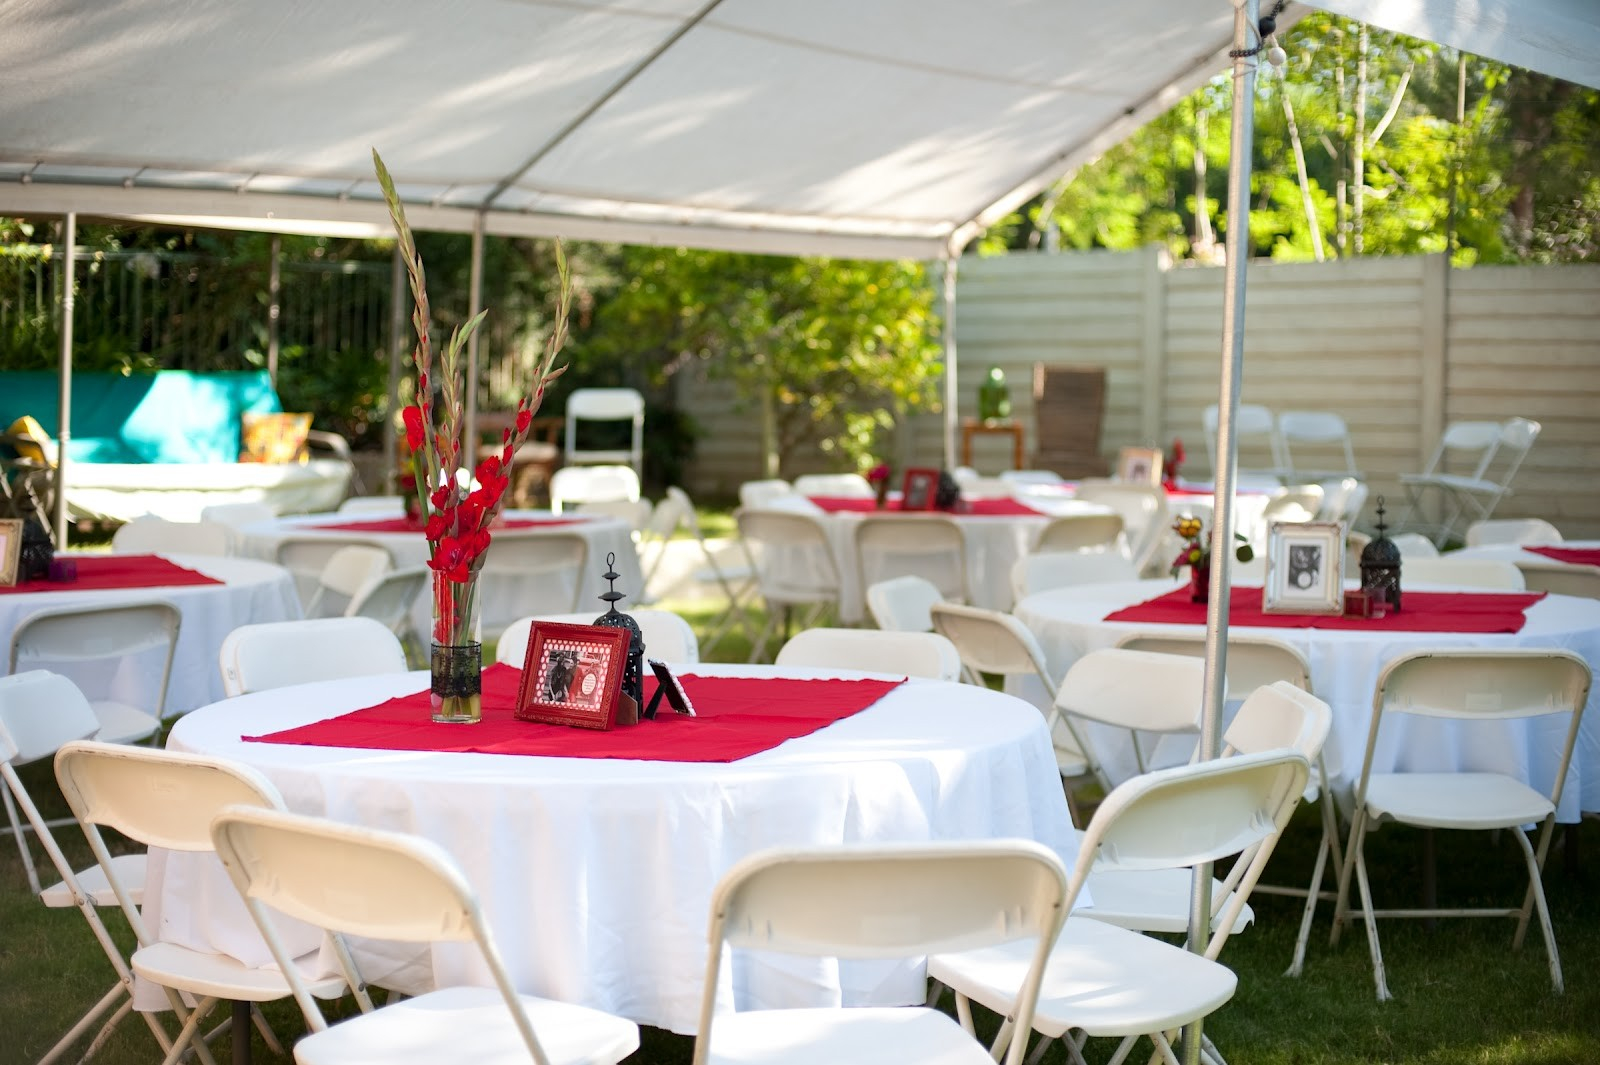 Backyard Wedding Reception Ideas On A Budget Simple Special regarding 10 Awesome Ideas How to Make Backyard Wedding Reception Ideas On A Budget